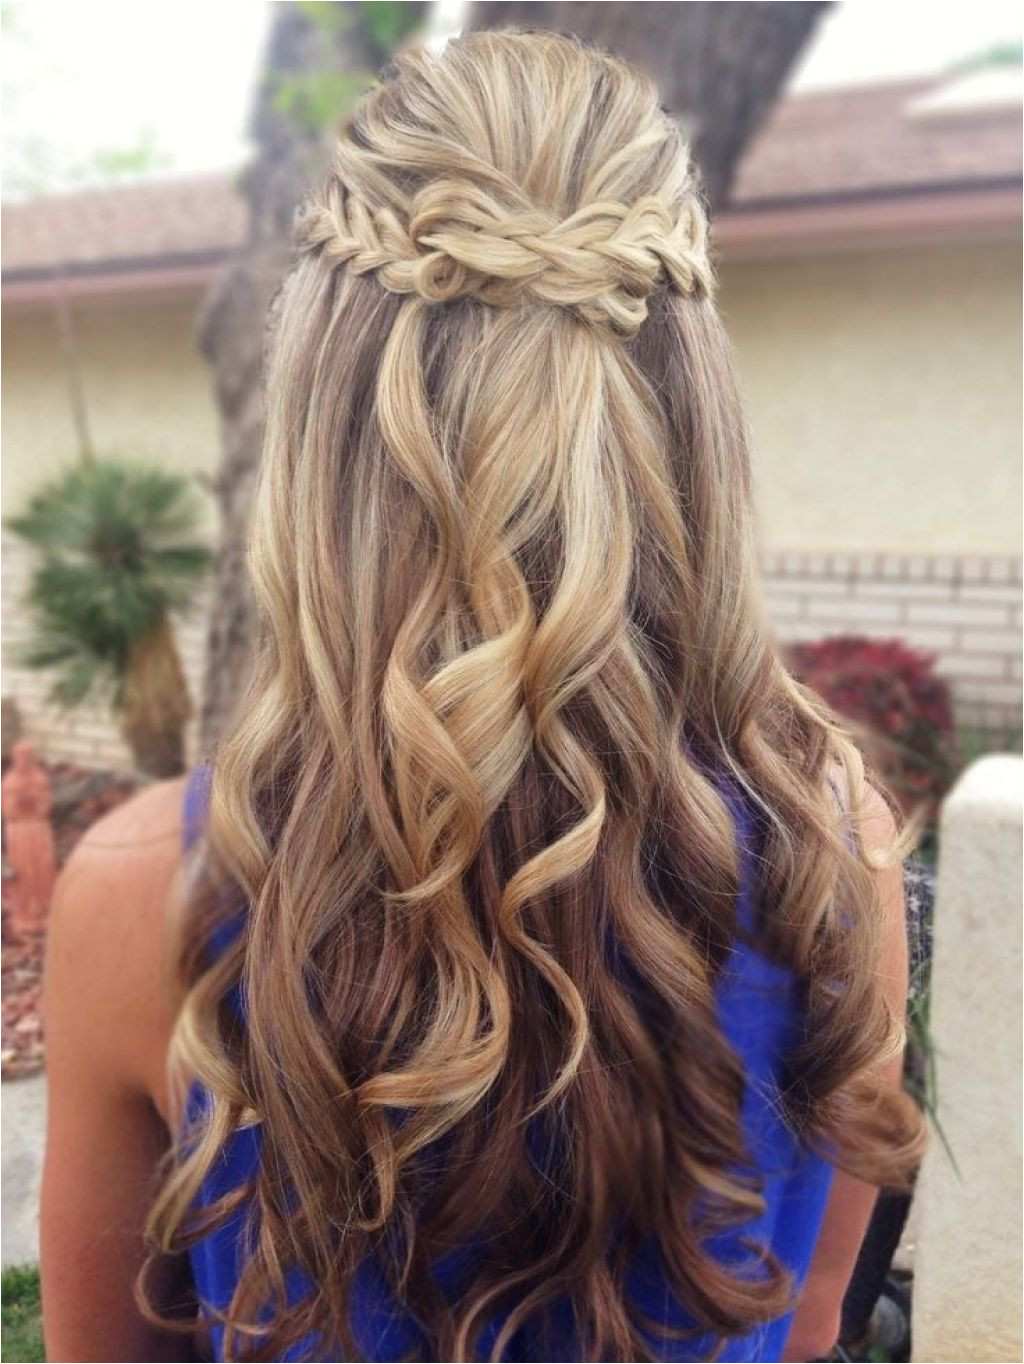 Prom hairstyles for long hair half up half down as fantastic ideas for unique prom hairstyles 6